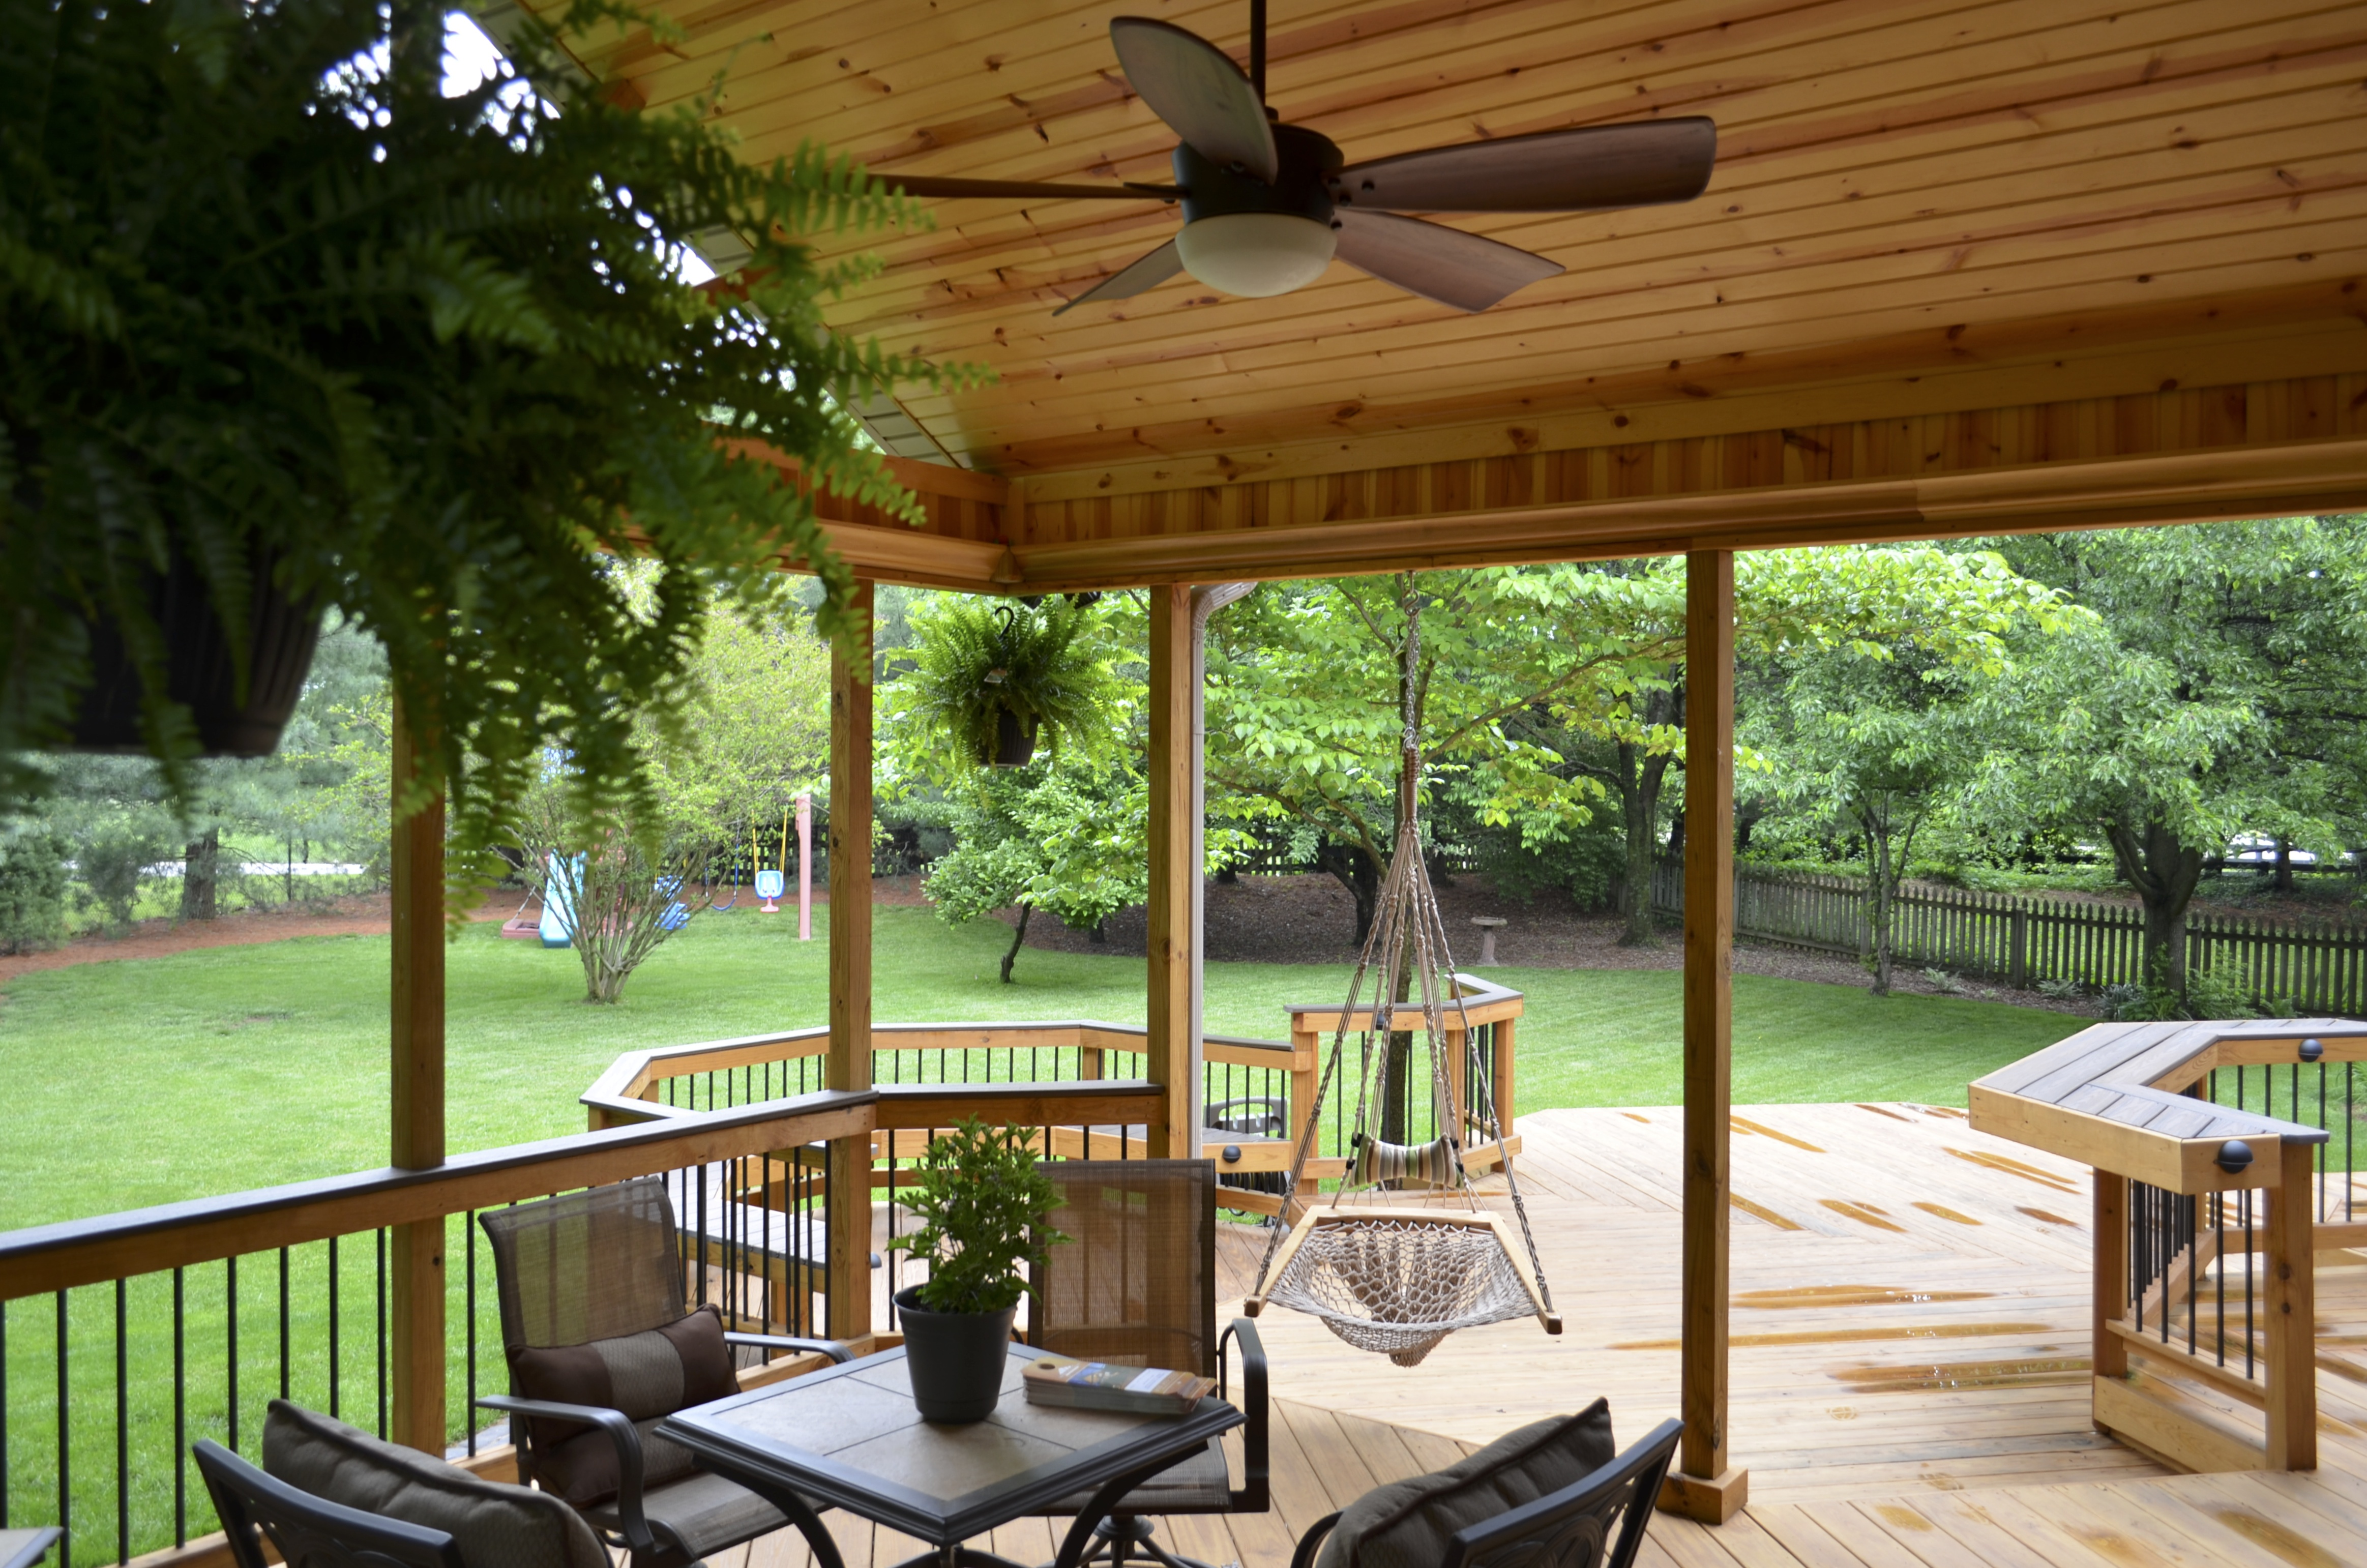 pin past for deck patio projects pinterest or outdoor cooler rugged